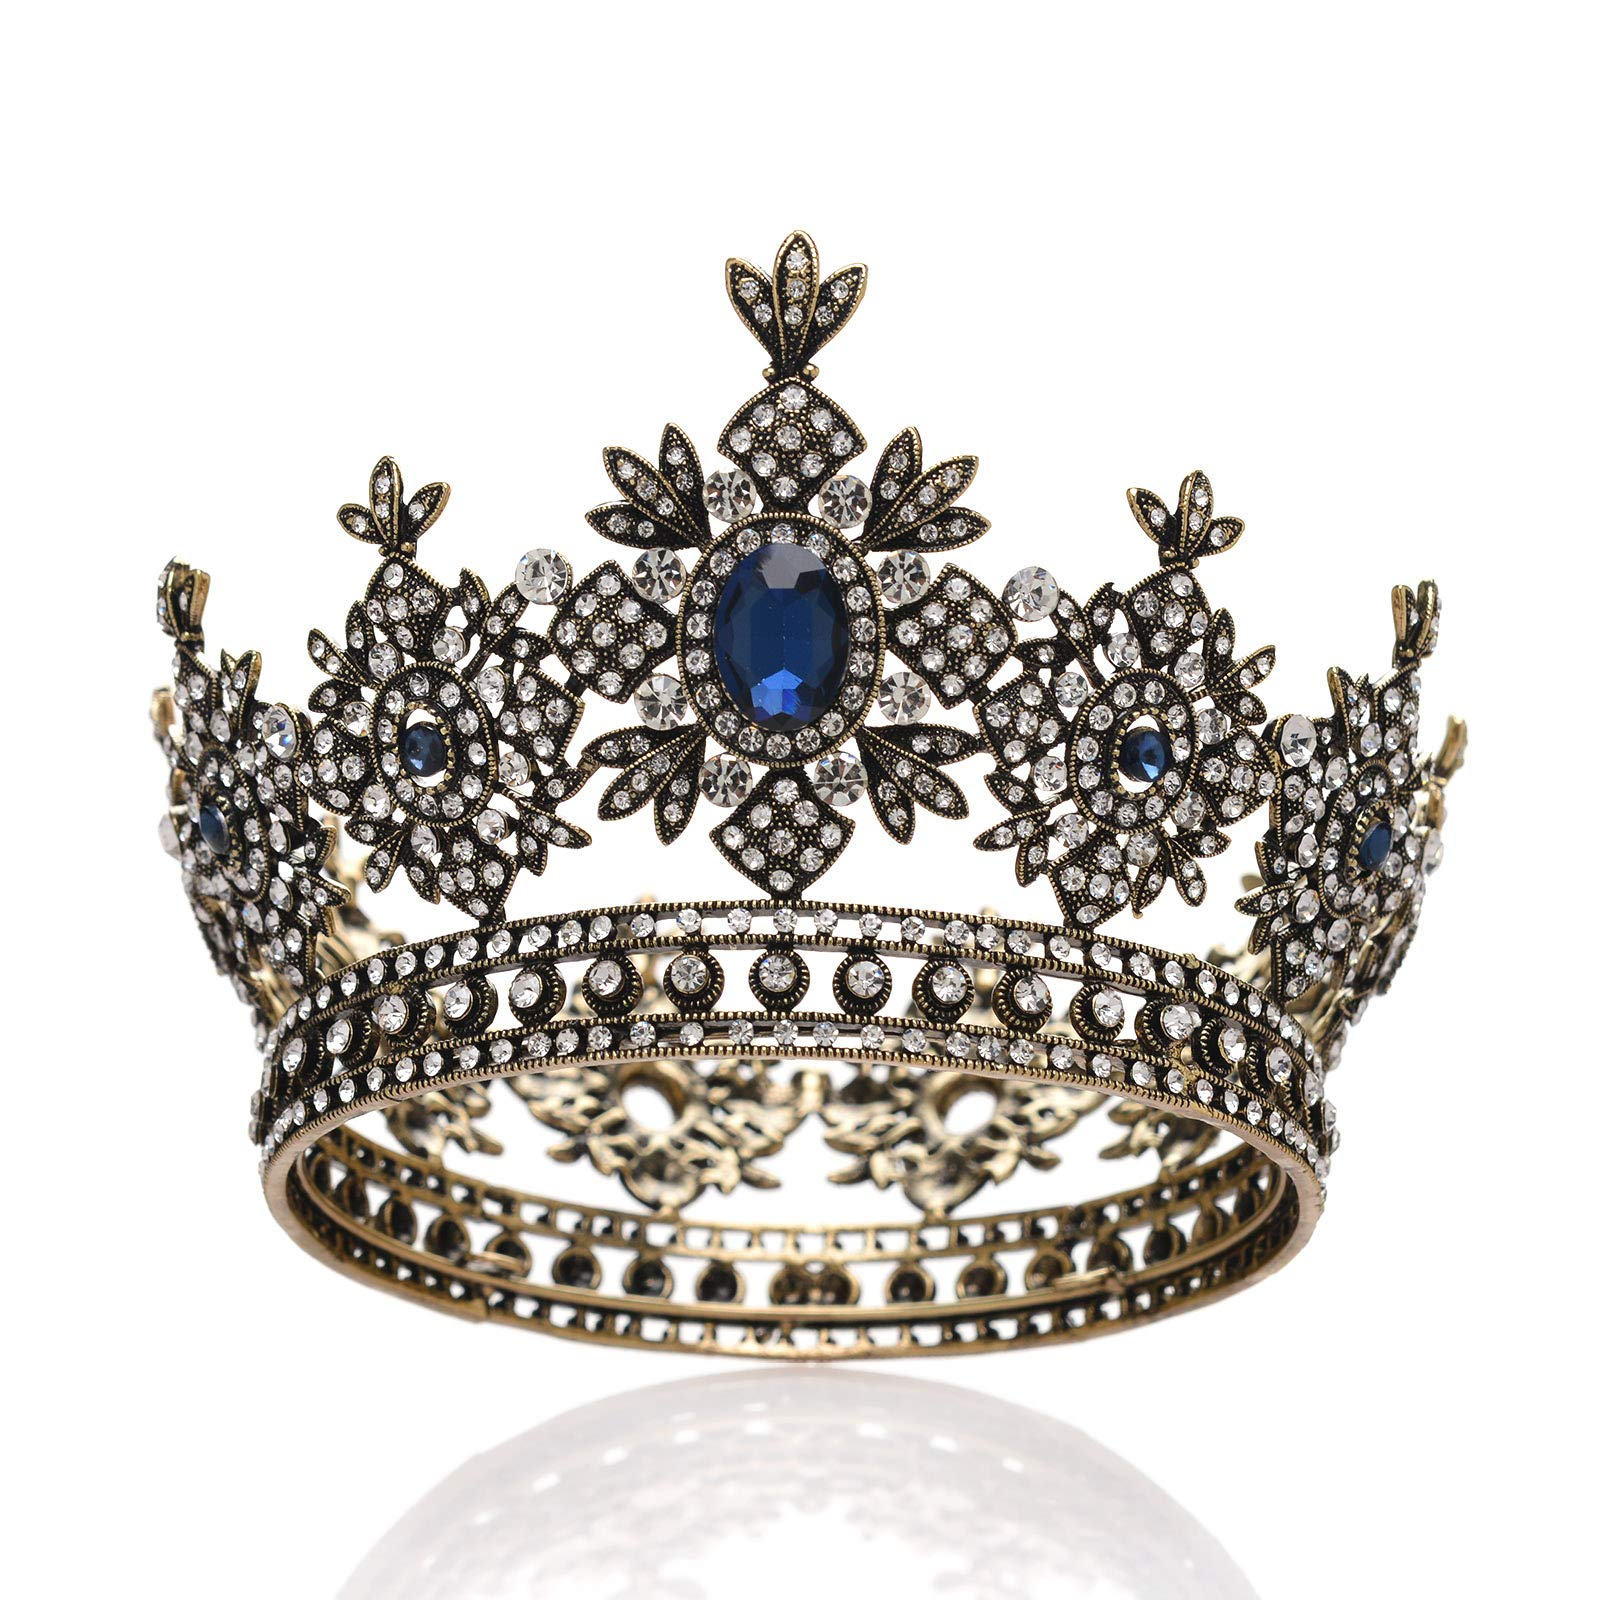 SWEETV Baroque Queen Crown for Women - Small Round Crown for Pageant, Photograph, Theater, Party - Royal Medieval Coronet and Scepter Costume Accessories